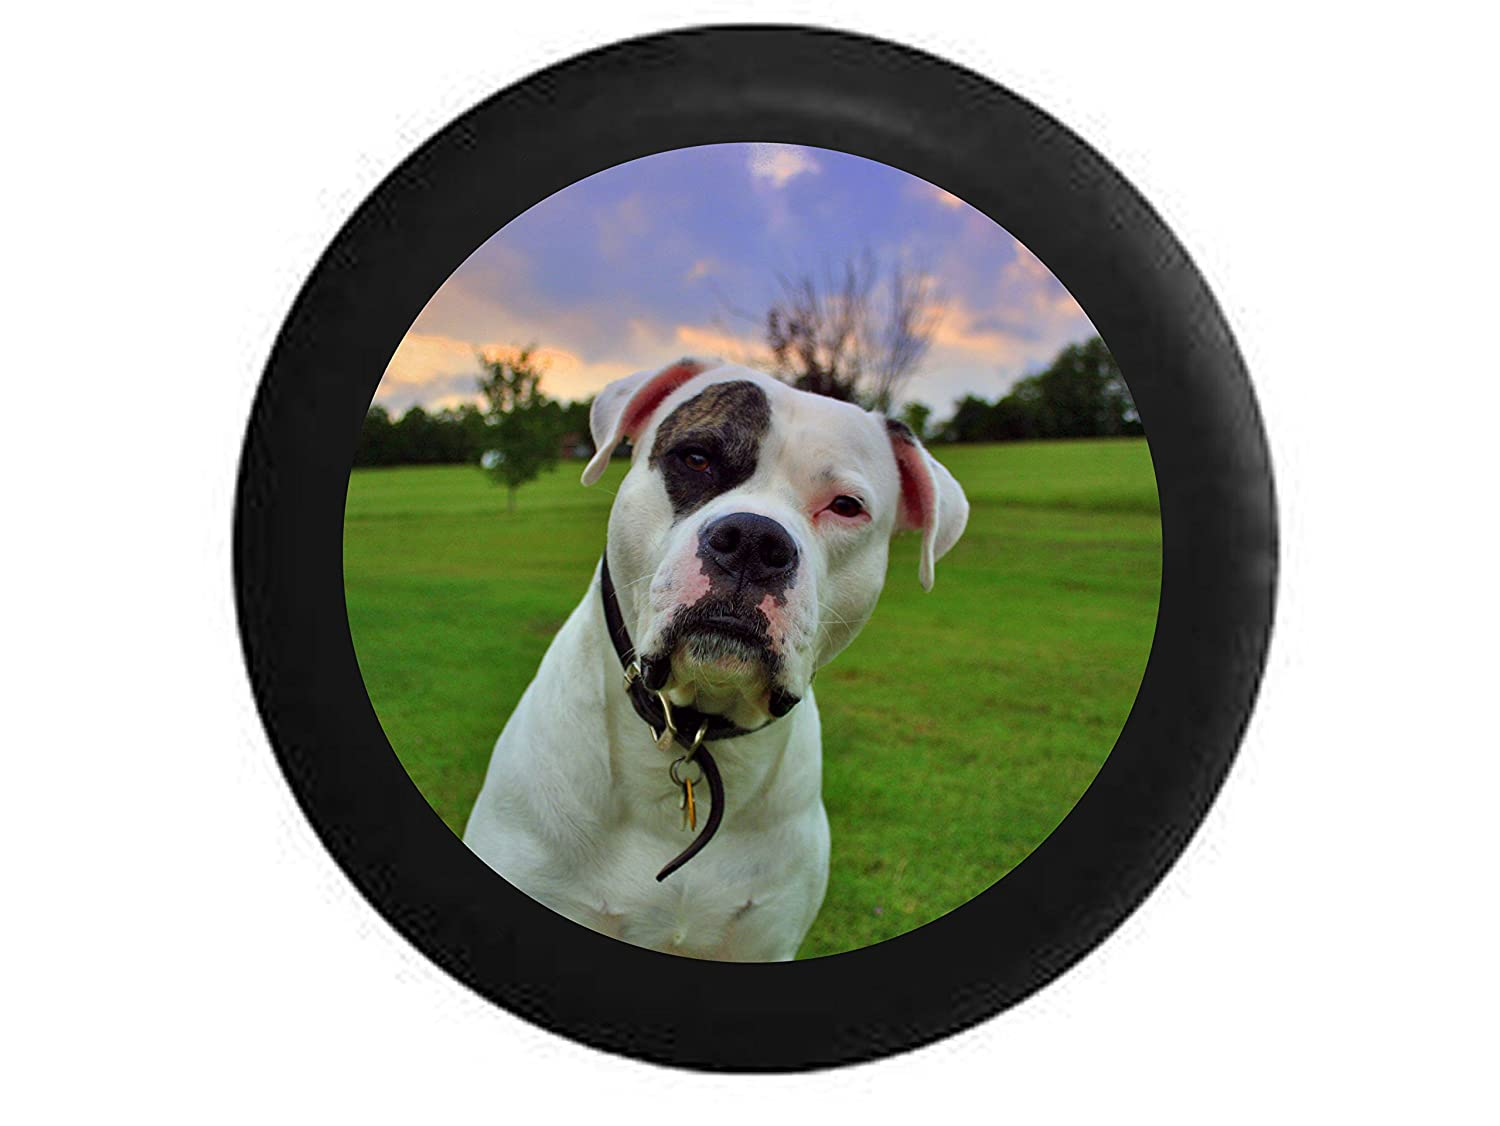 Full Color White Spotted Dog Pitbull Bulldog Bully Breed Lab Mutt Spare Tire Cover Black 33 in Pike Outdoors